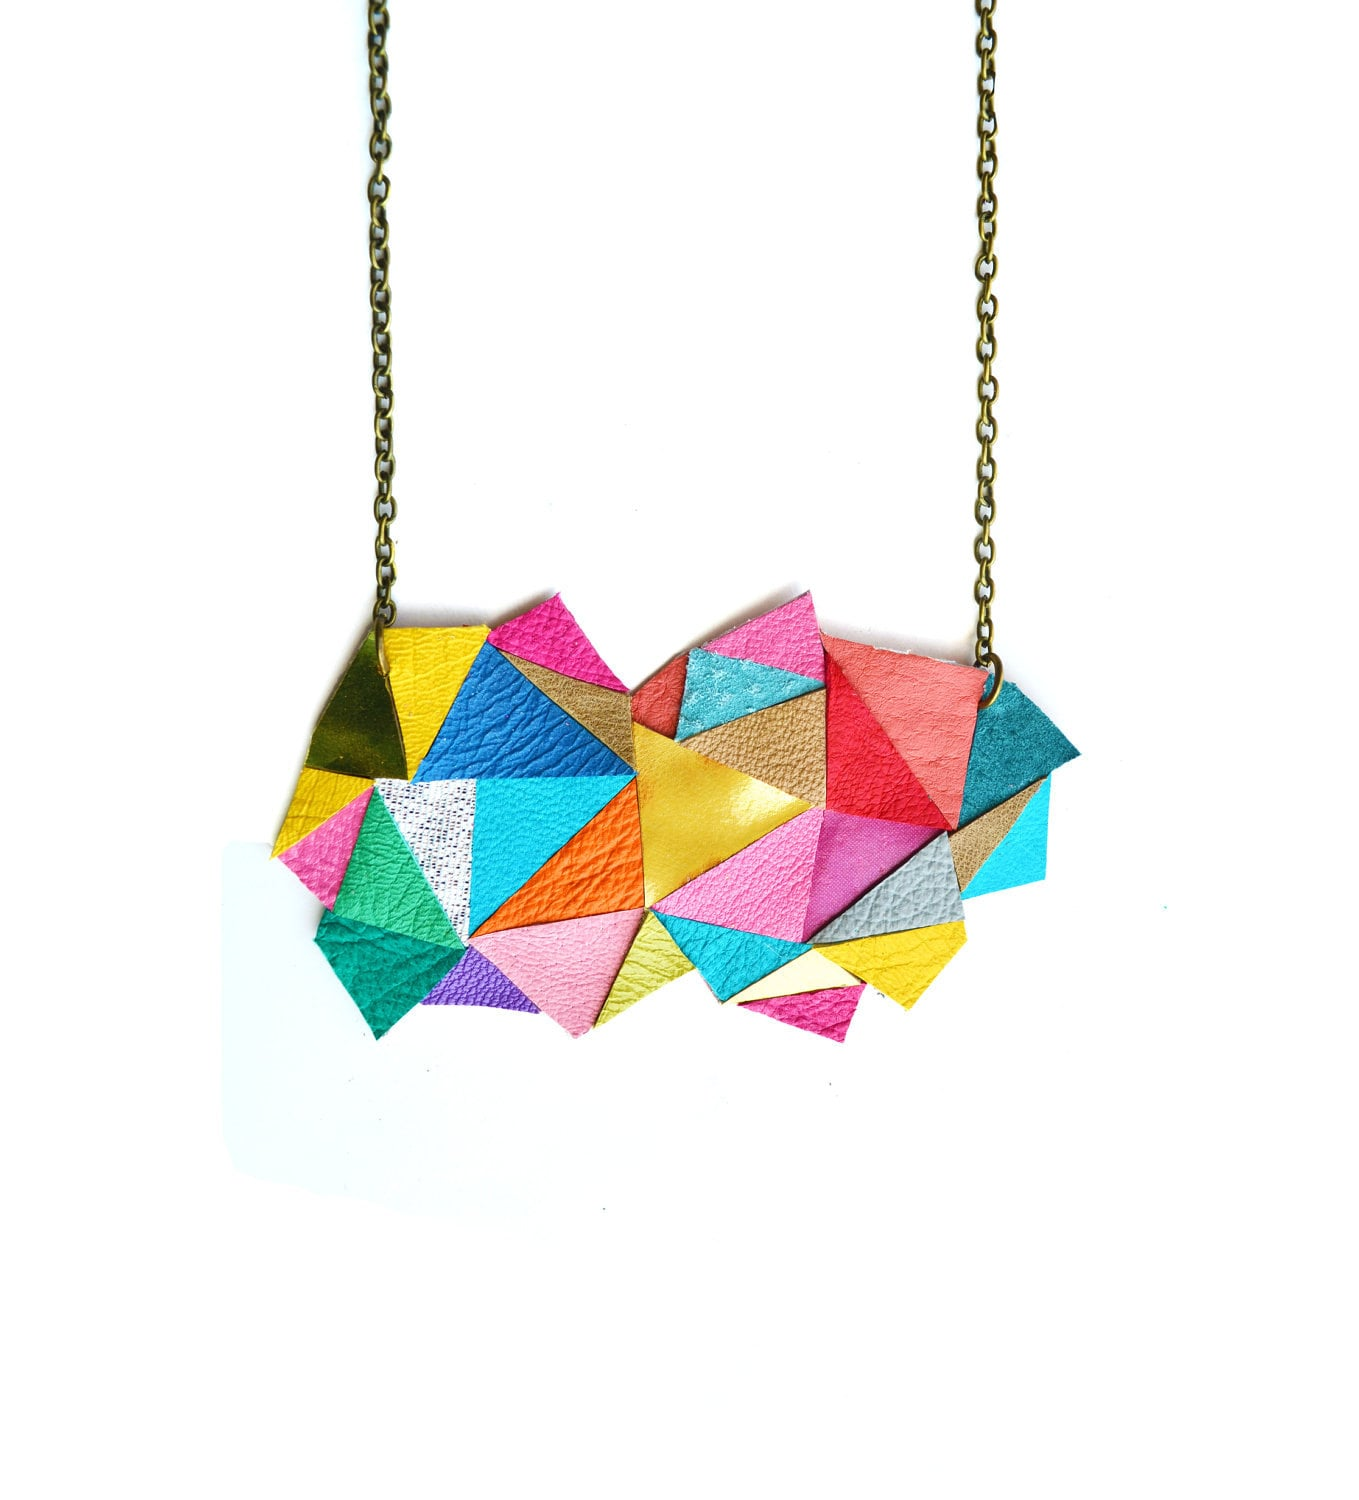 Geometric Necklace Neon Triangles and Modern Angles - BooandBooFactory